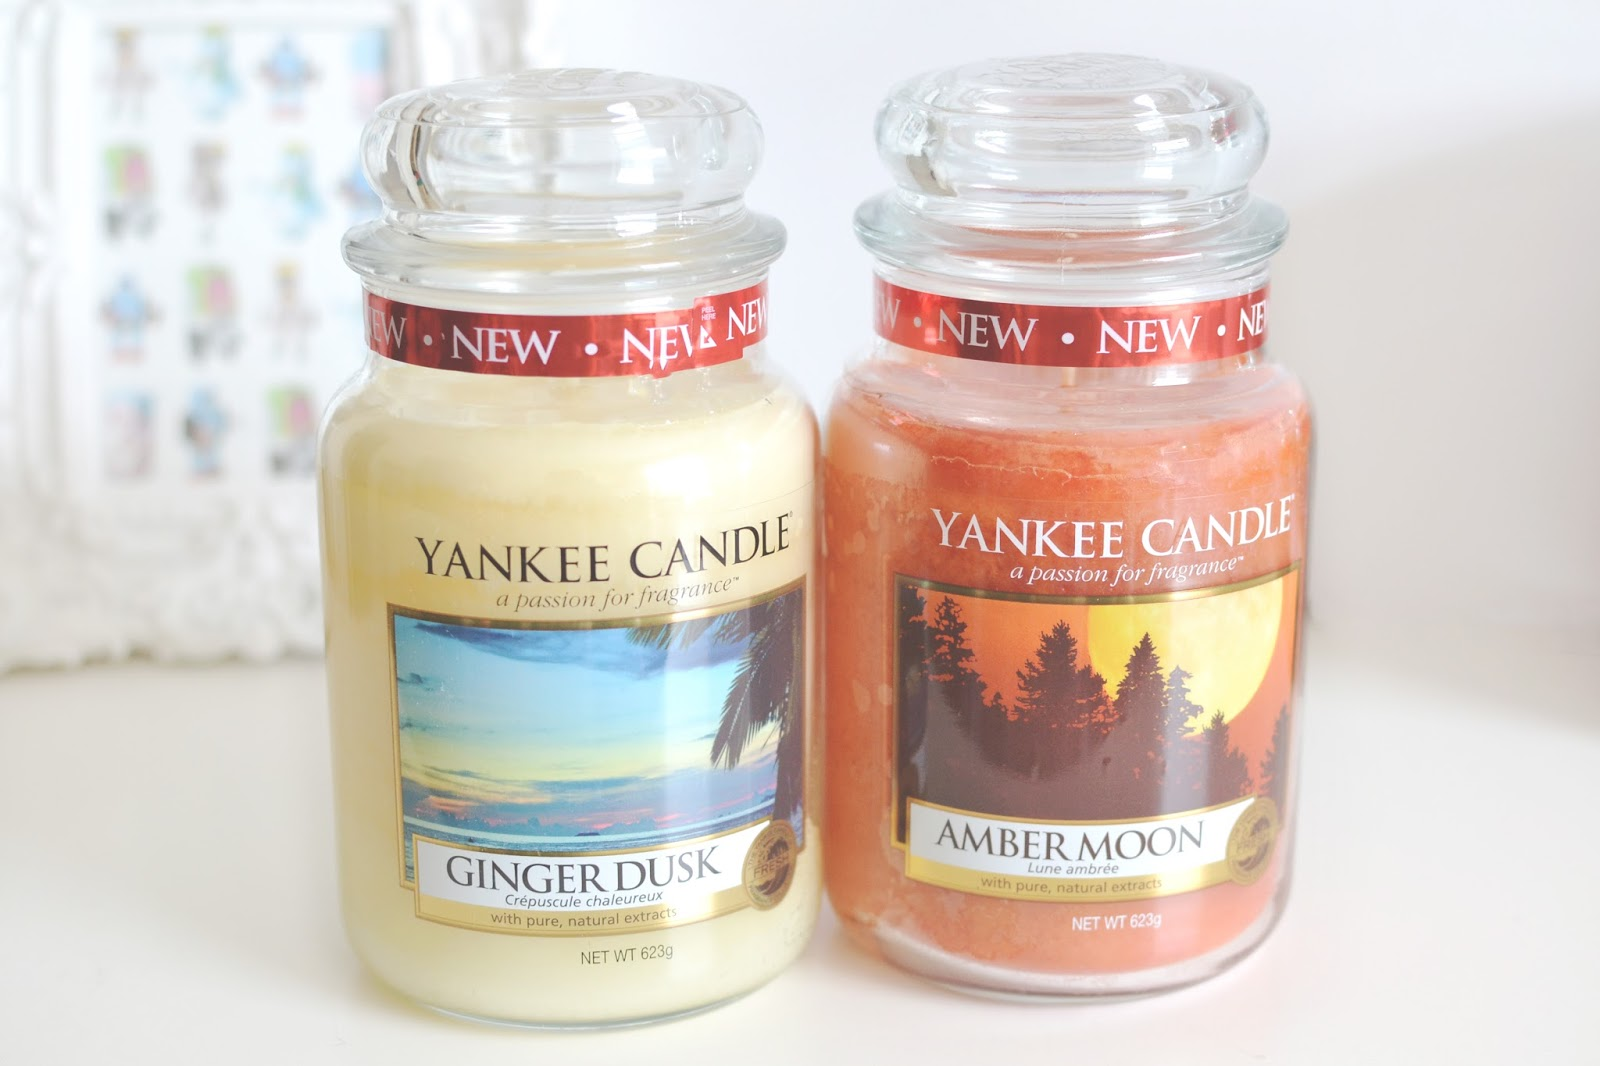 new candles from yankee candle, indian summer range from yankee